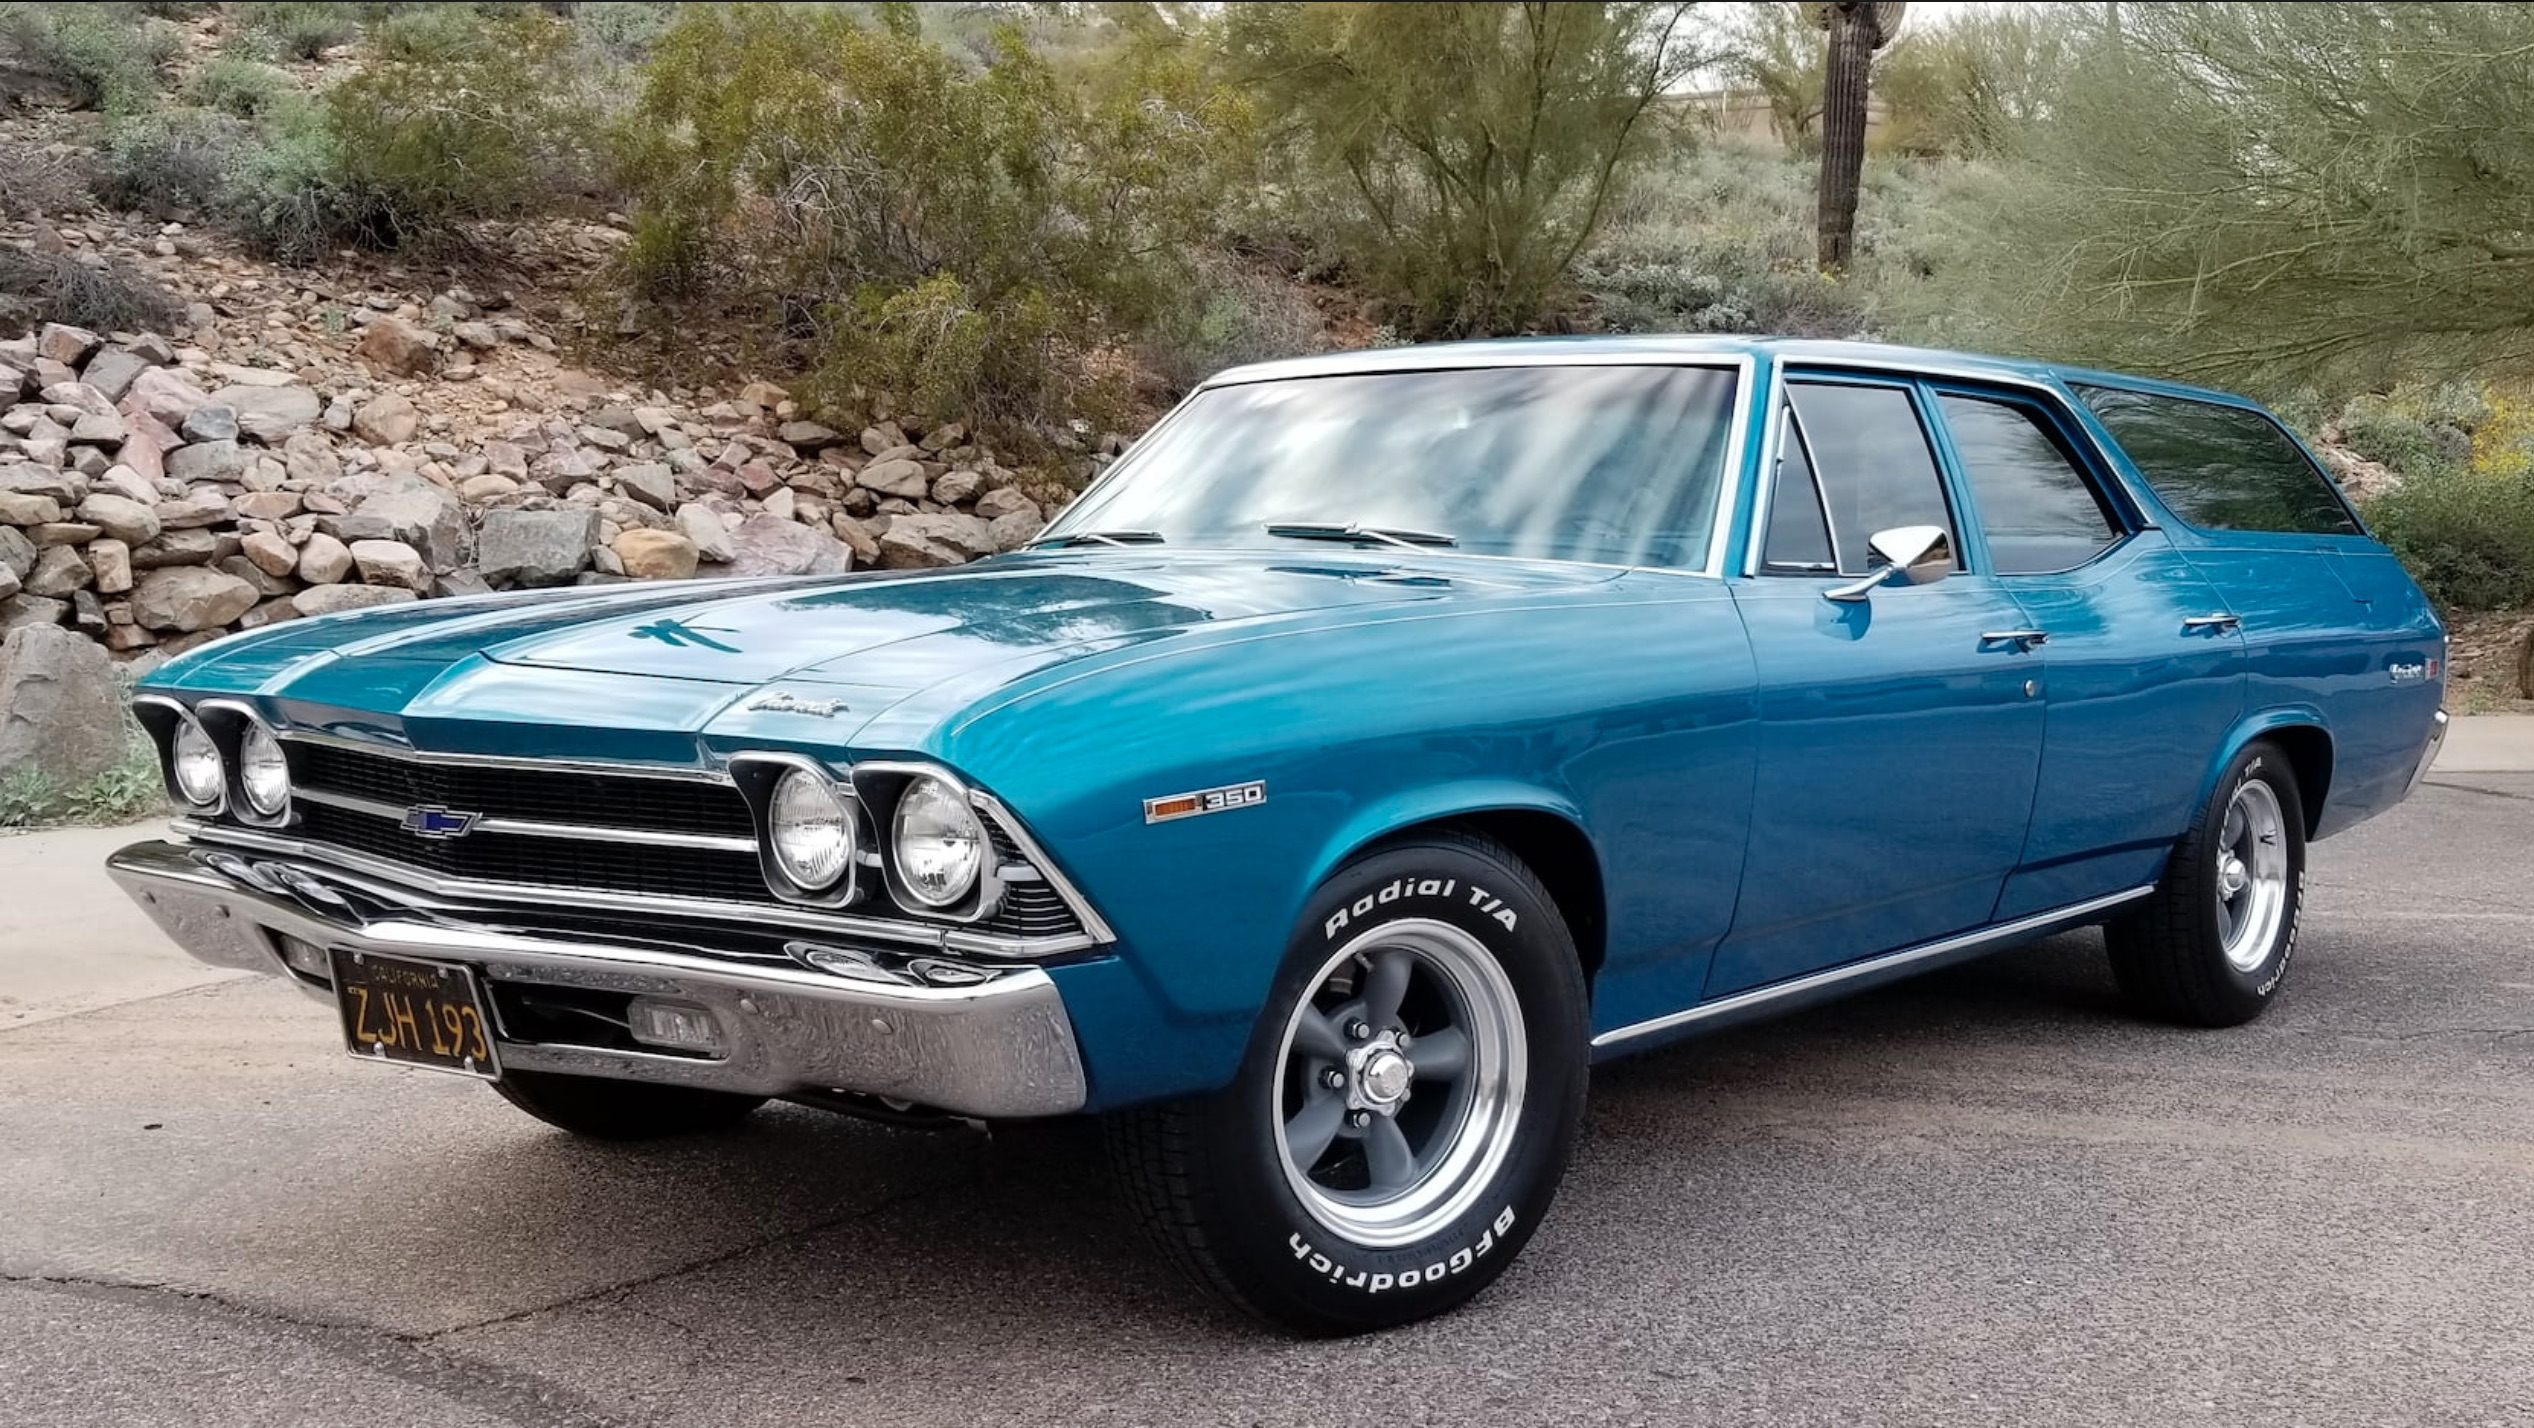 Money No Object: 1969 Chevrolet Chevelle Greenbriar – Super Sports Wagon, Yes. Antarctic Blue? Close Enough.